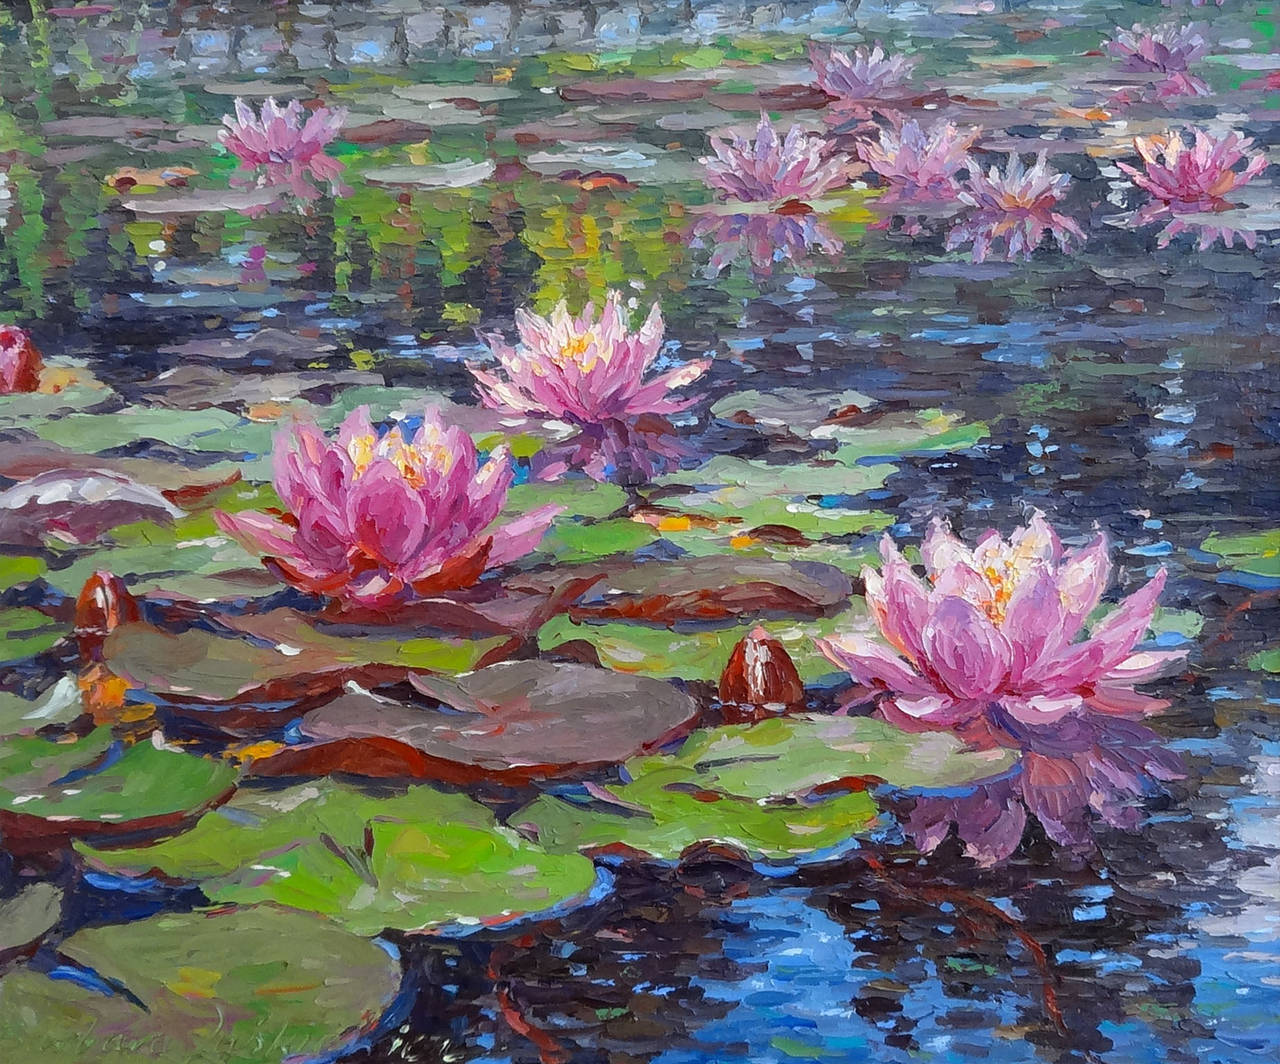 Barbara Jaskiewicz - Water Lilies, Painting For Sale at ...